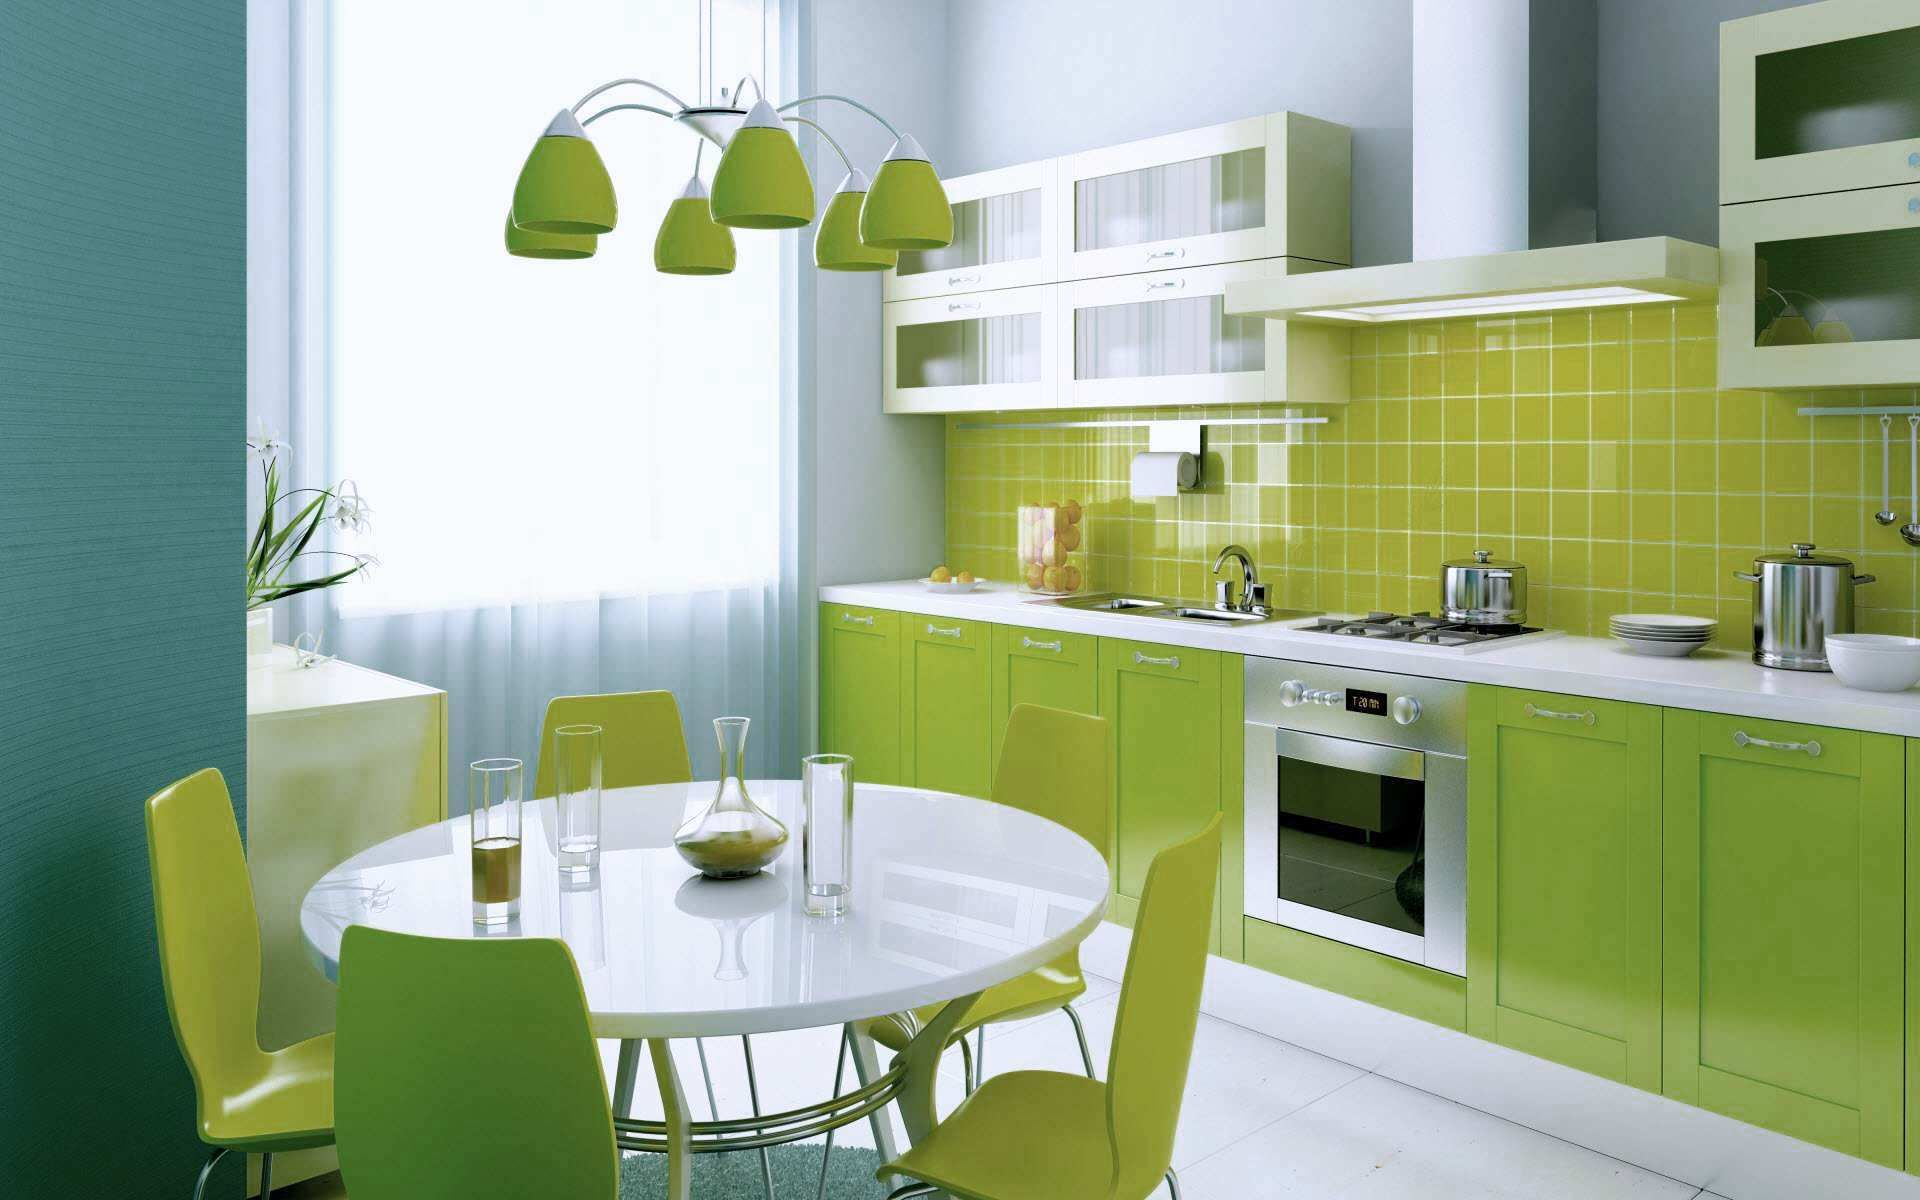 home2decro offer best One of the inexpensive kitchen